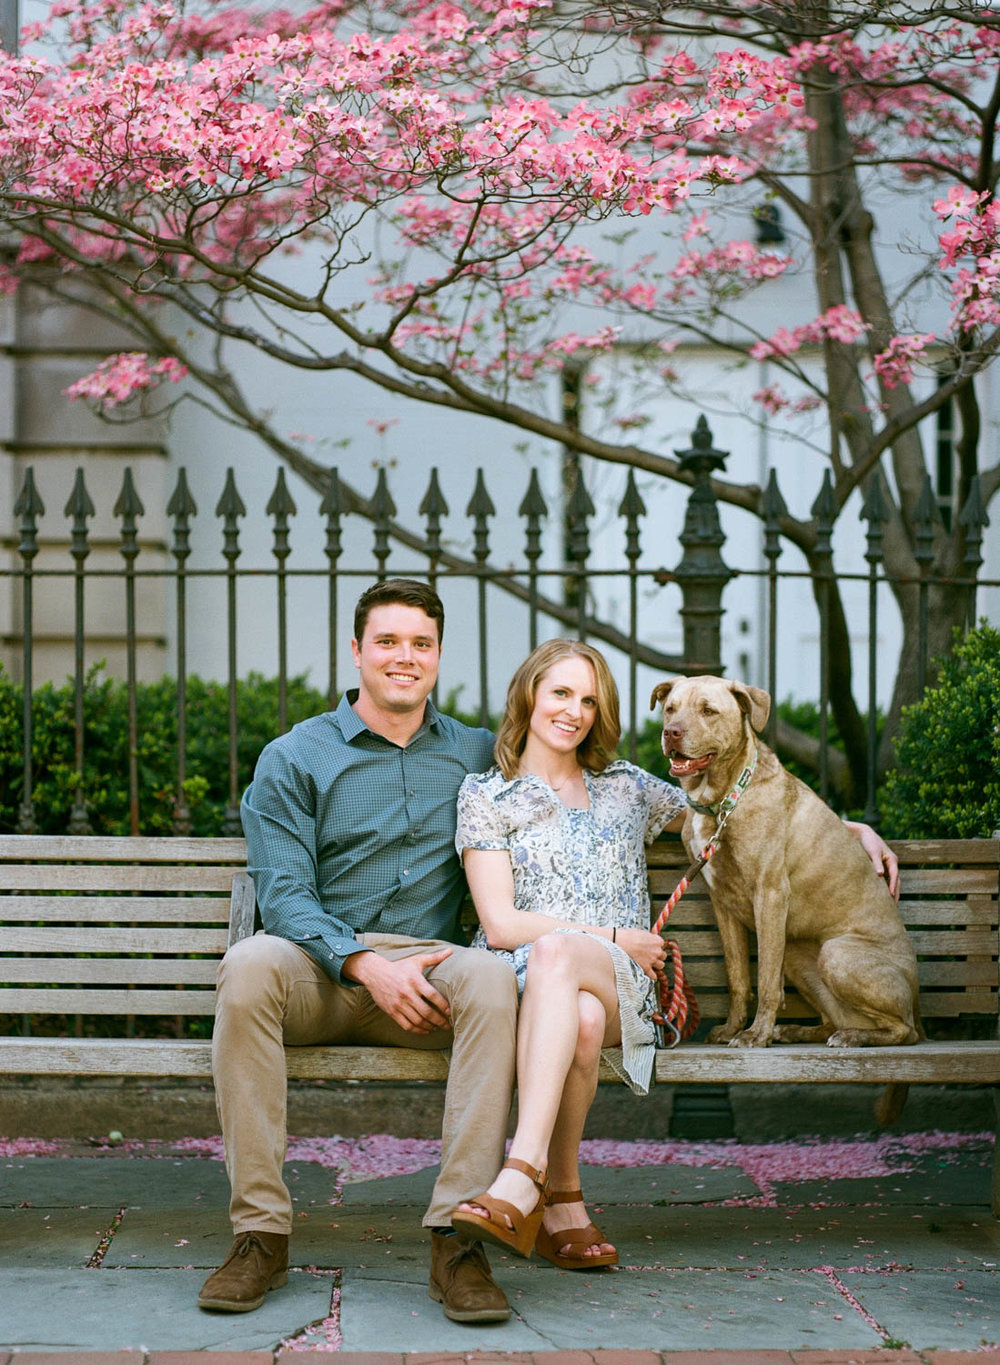 photographers-in-philadelphia-wedding-photography-family-photography-pet-photographer-jep-3